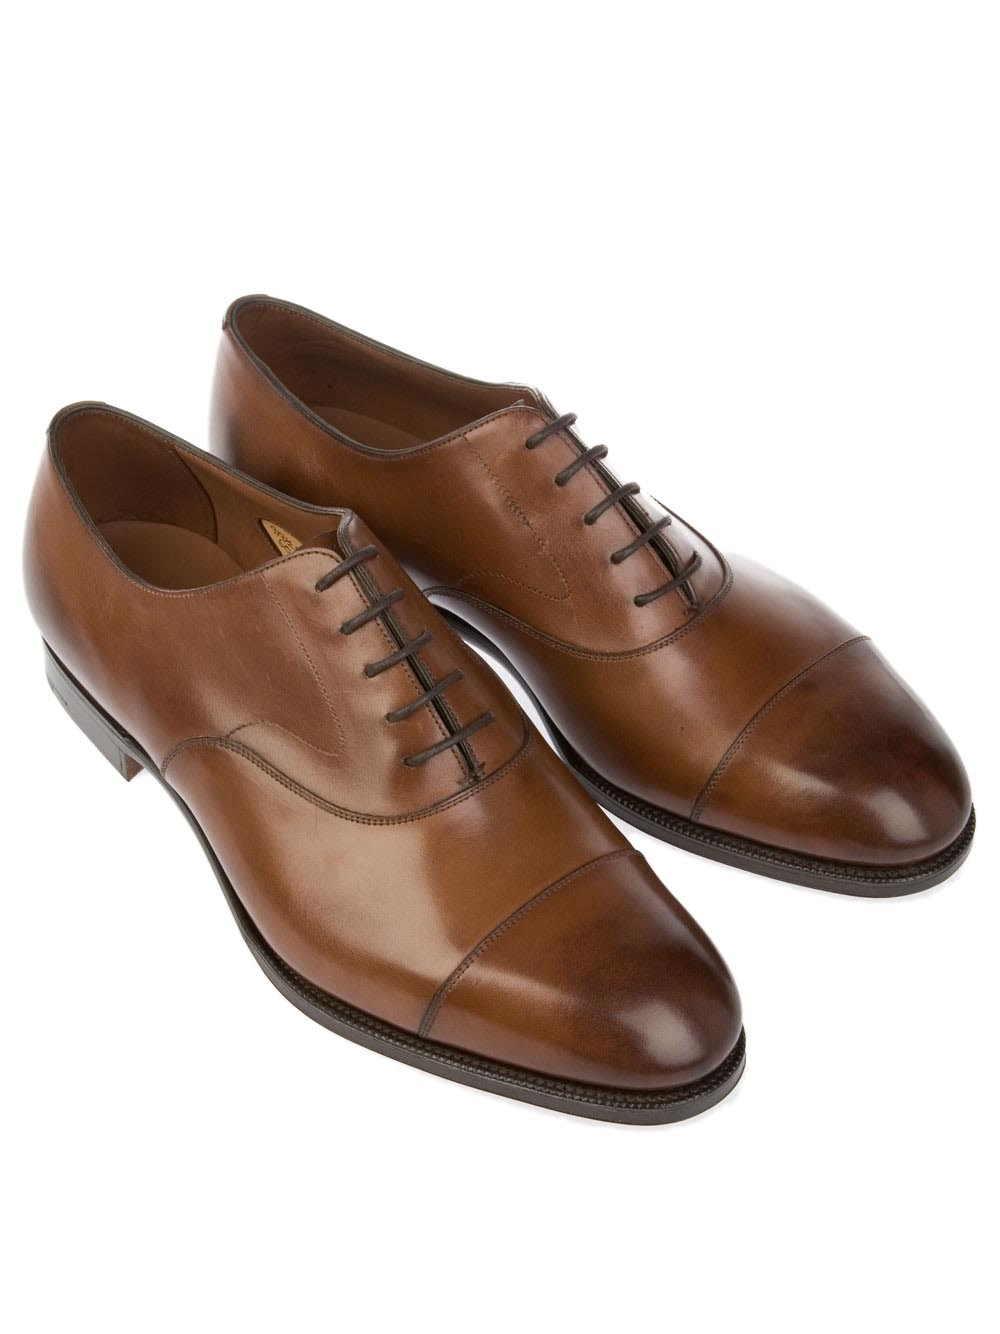 Edward Green Chelsea Shoe Burnt Pine Antique | CHELSEA | Botta & B Online Store